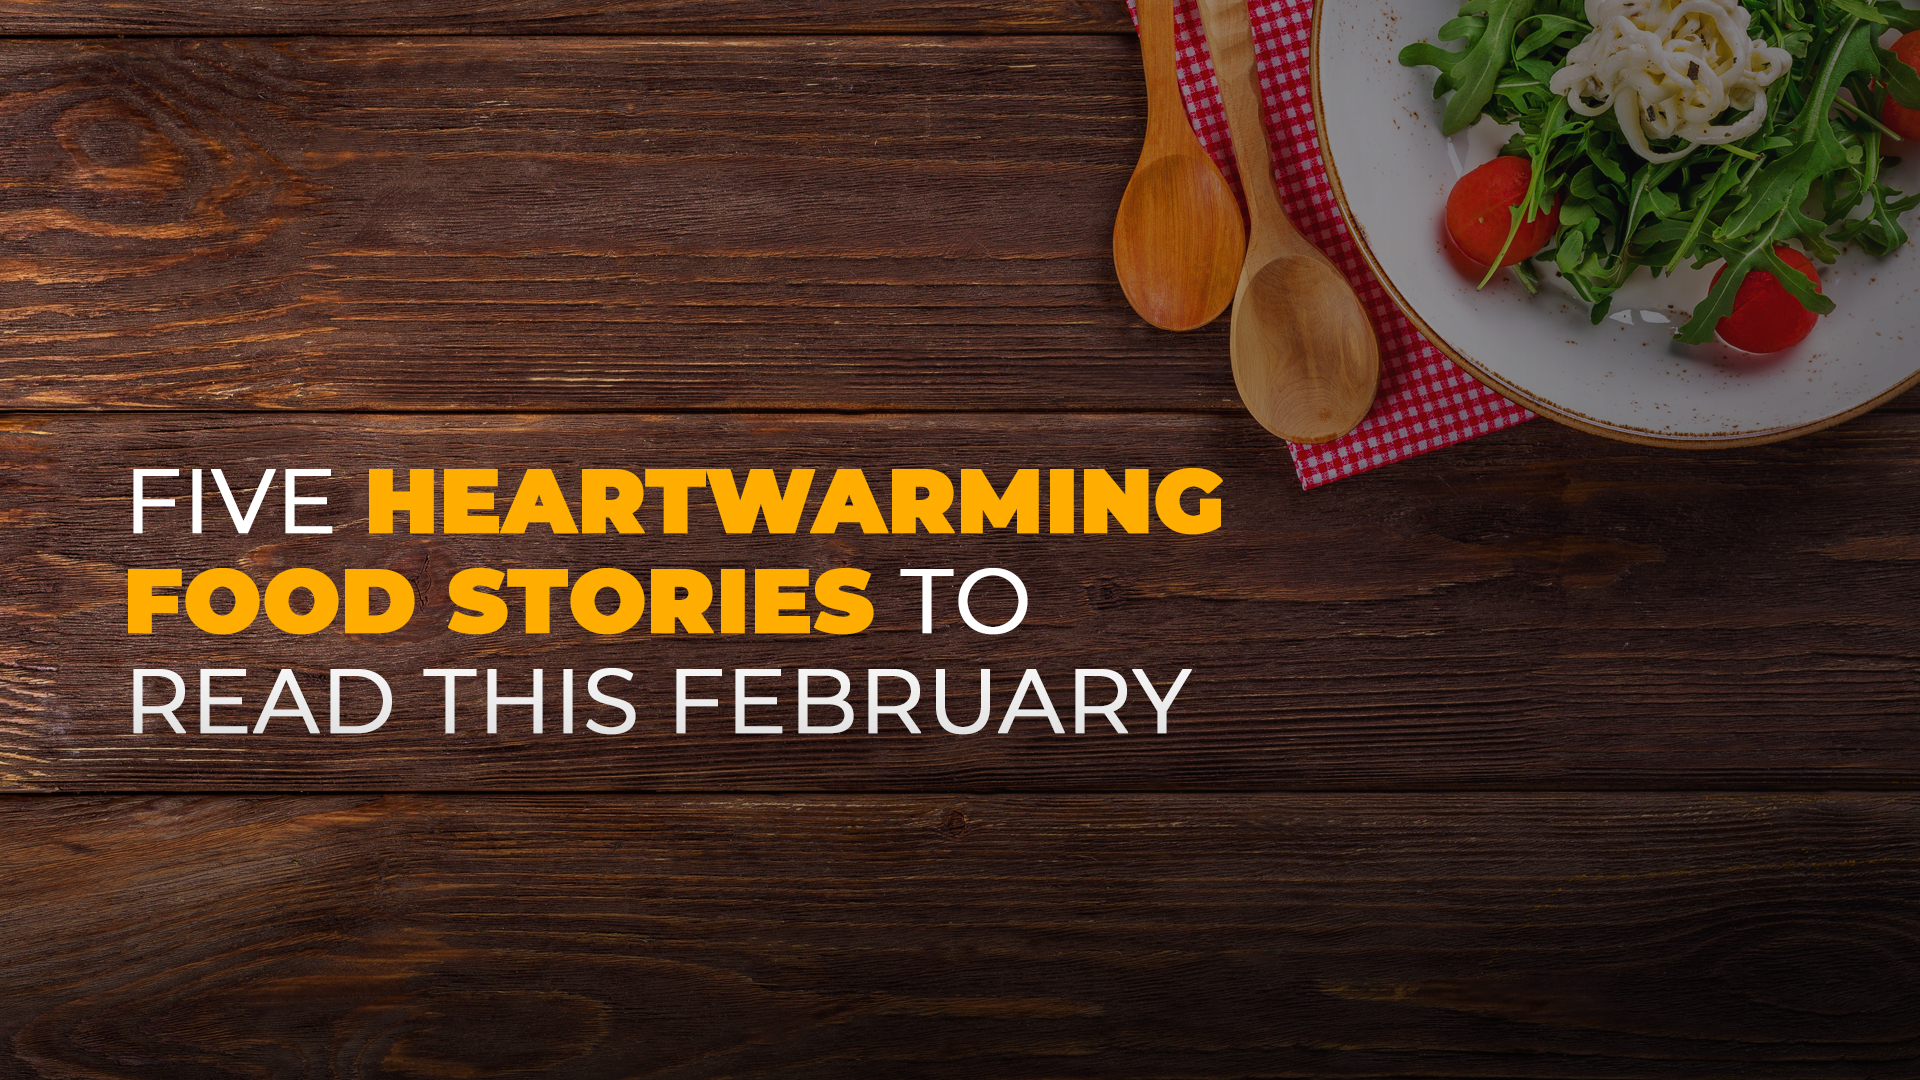 Five Heartwarming Food Stories to Read This February banner